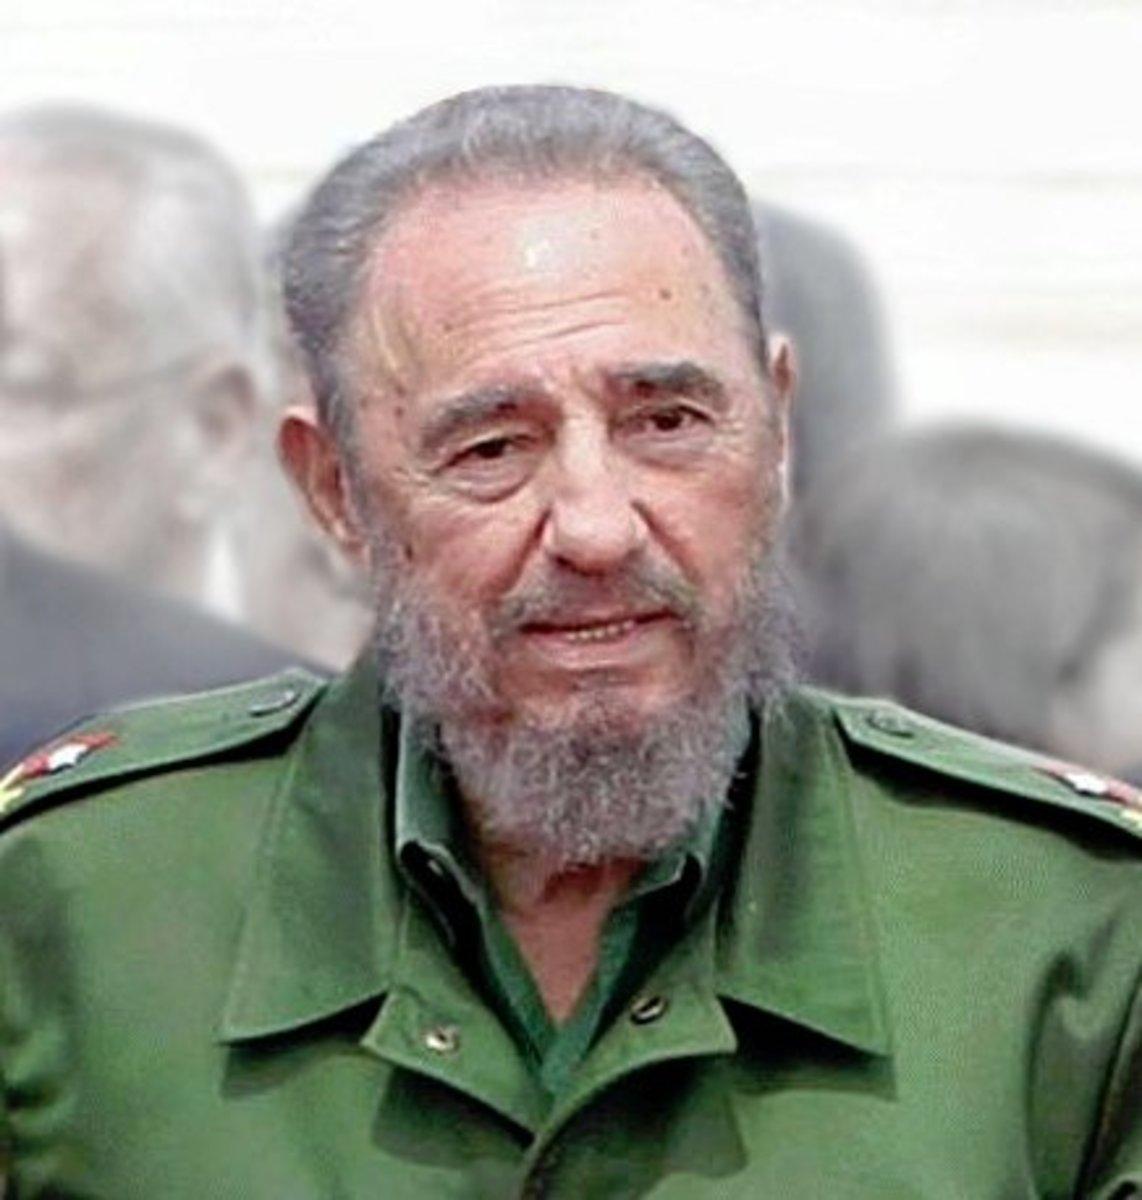 Fidel Castro was Cuba's ruthless Marxist-Leninist leader for almost five decades.